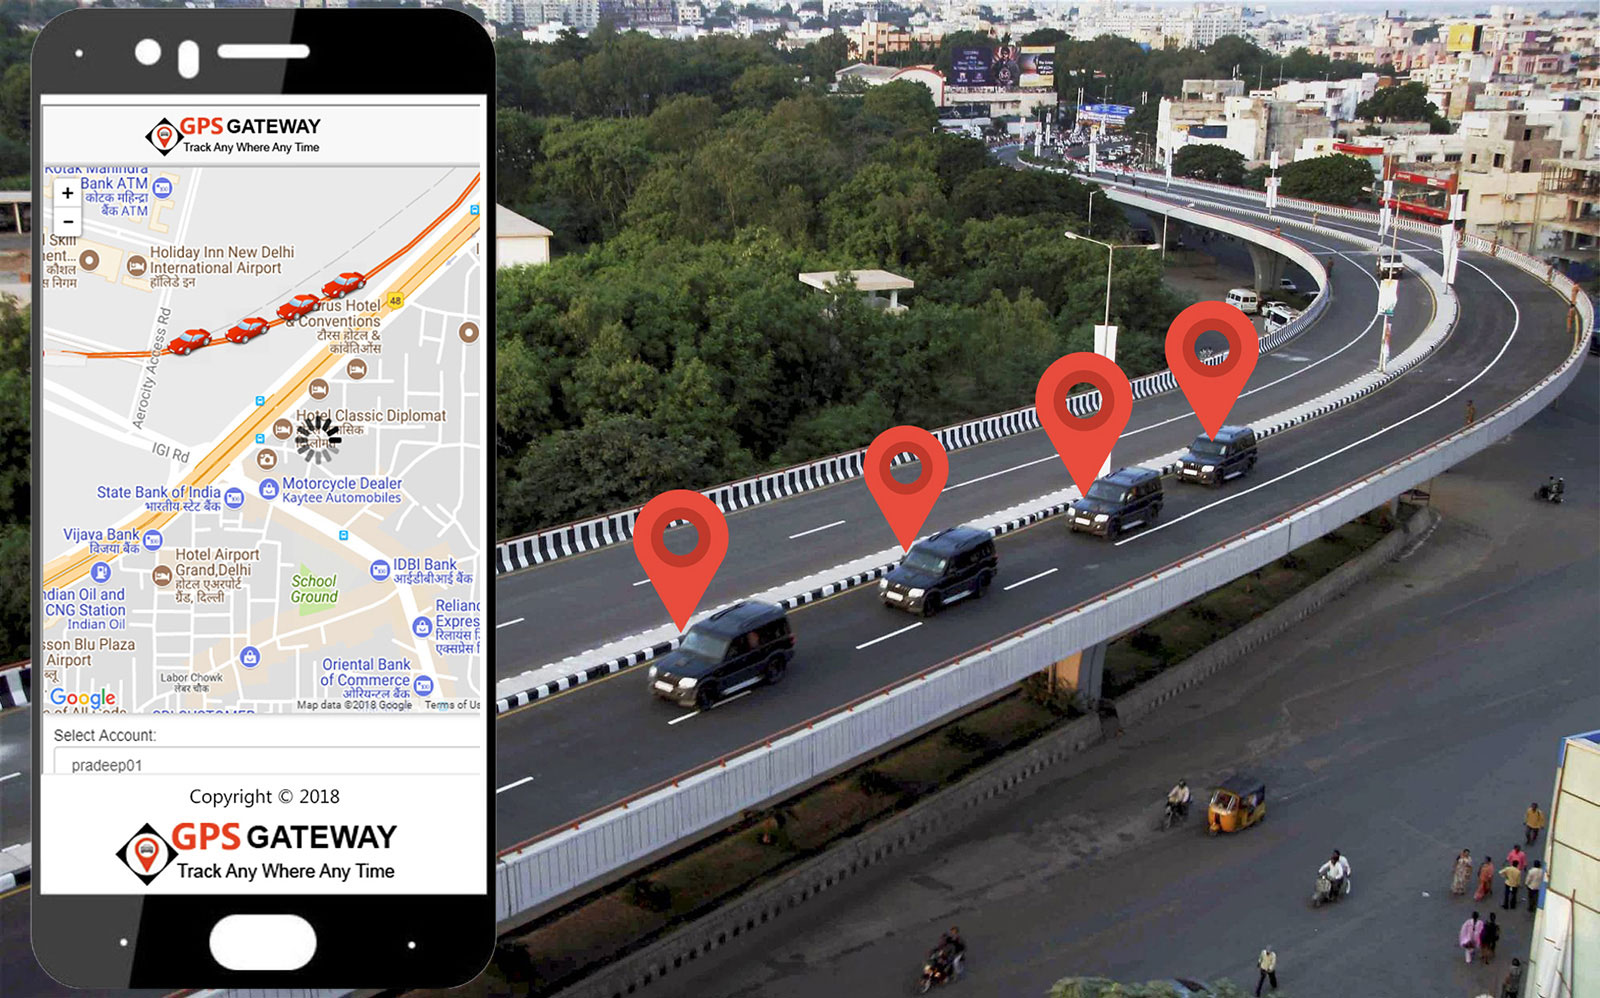 gps tracking system source code, White level GPS Tracking platform, Open source GPS Tracking software, GPS Tracking Software,  Indvehicle tracking software,  fleet tracking software , gps software receiver source code, gps tracking software with open source code